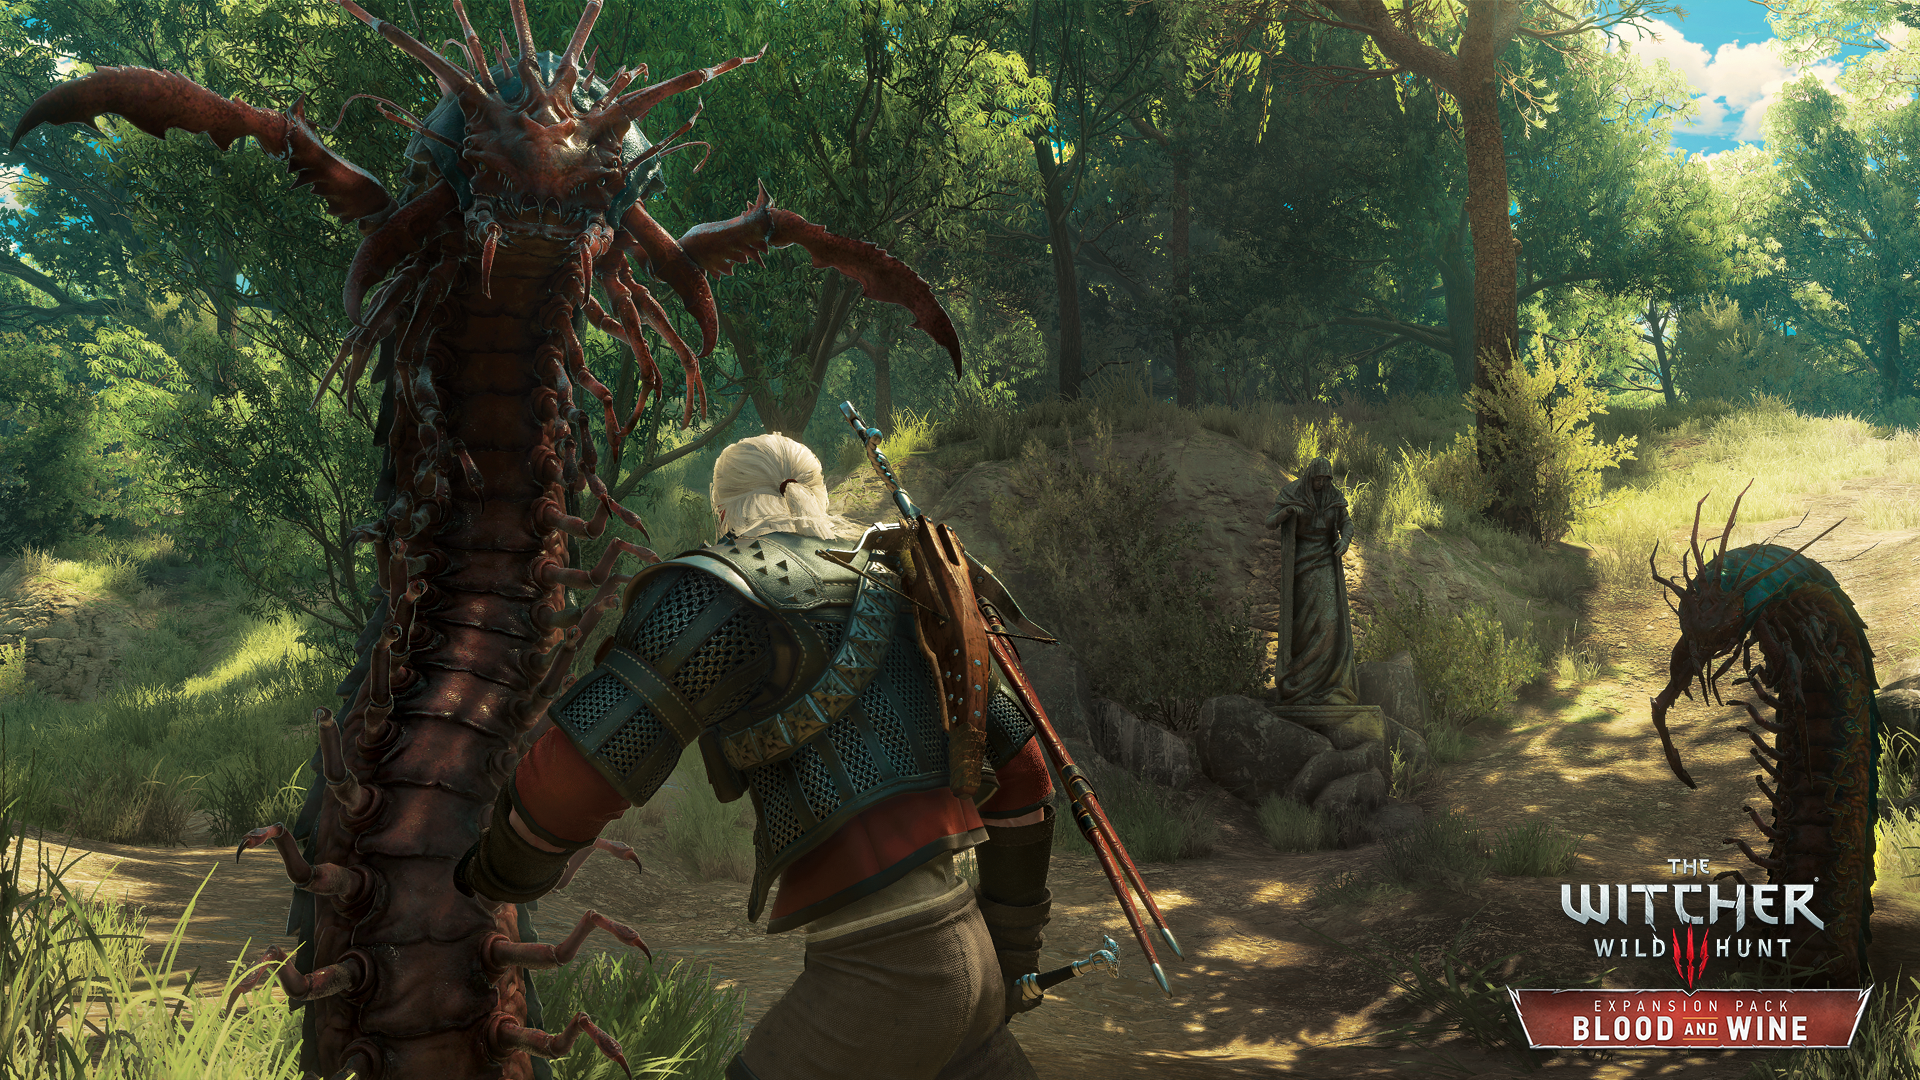 The Witcher 3 Blood And Wine DLC Picks Up 3 Awards At Golden